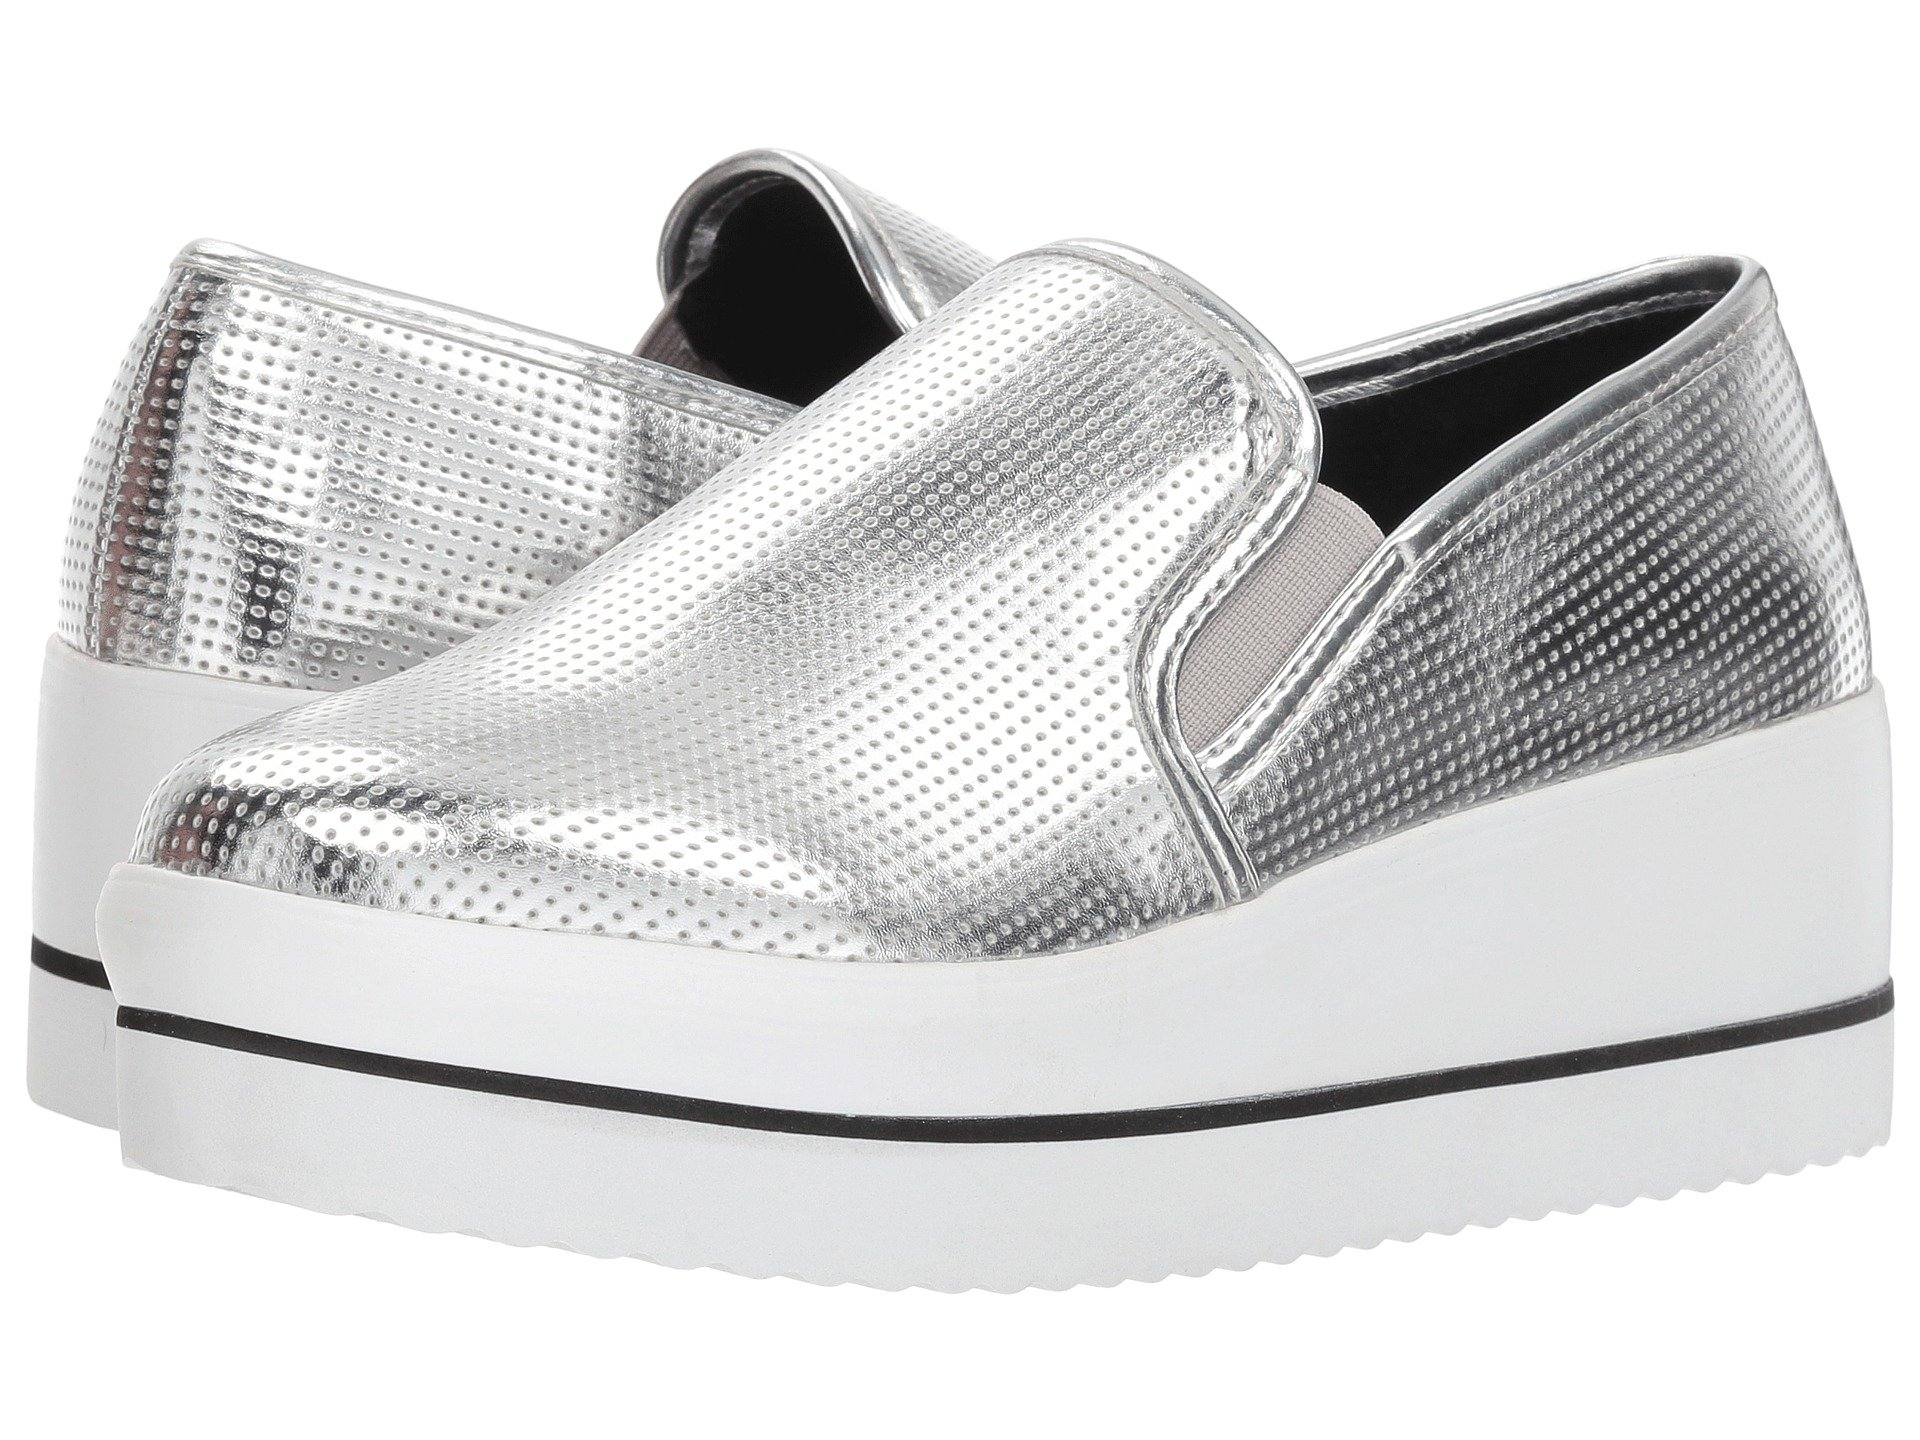 6f524d38730 Elevate your chic everyday look in the Steven Madden Becca platform sneaker.